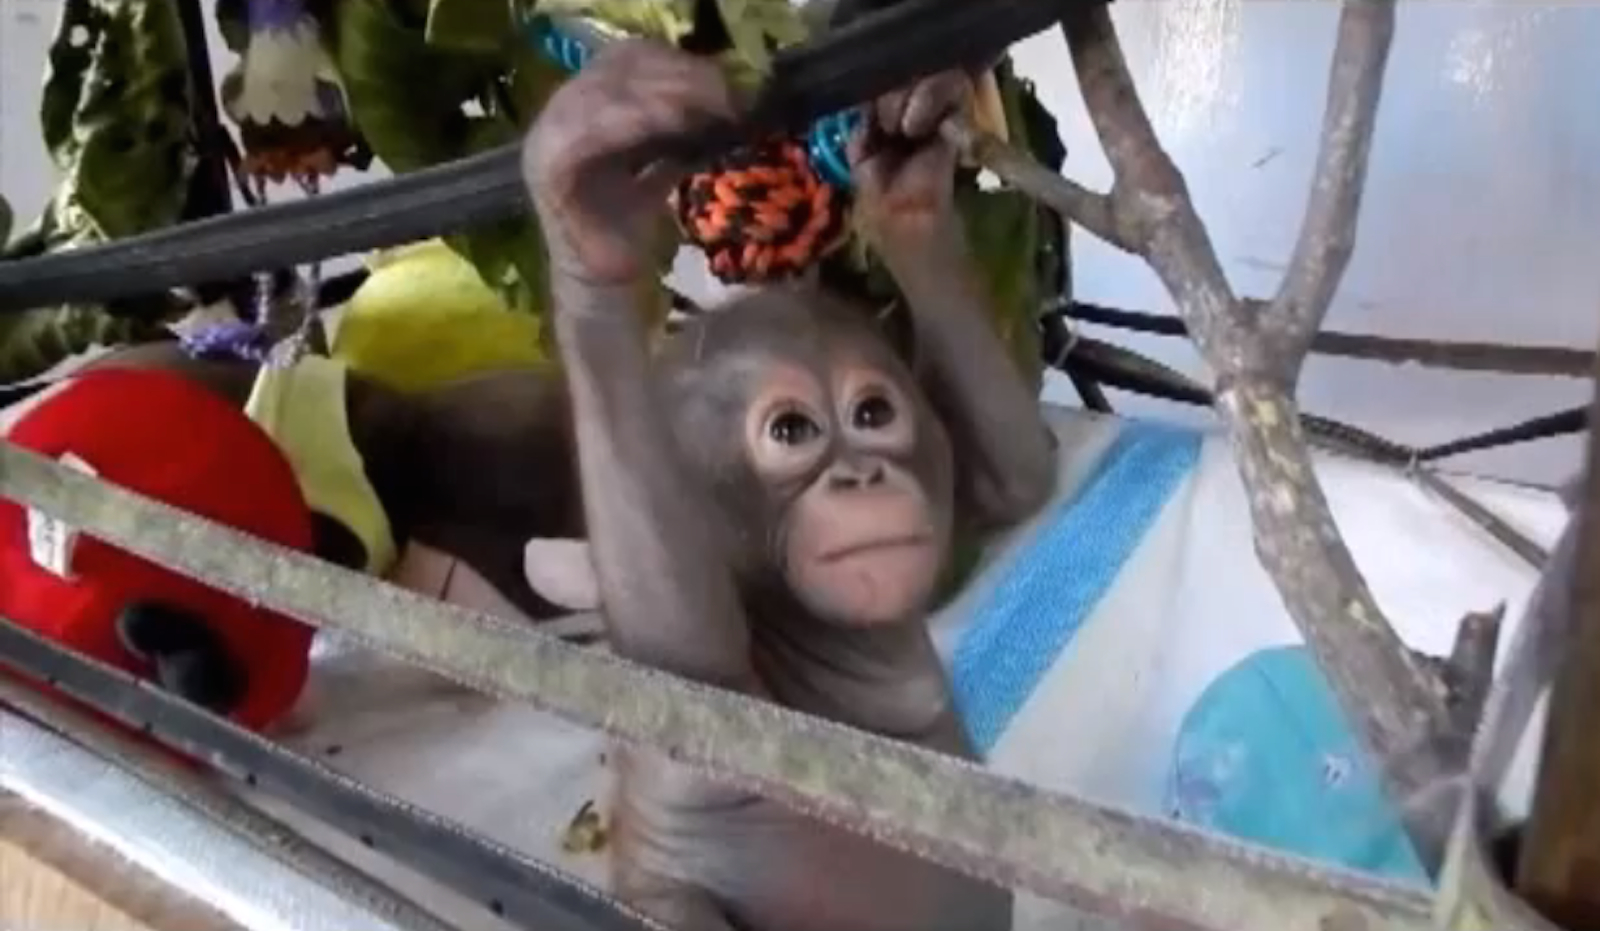 Making Progress! Budi the Rescued Orangutan is Learning to Climb